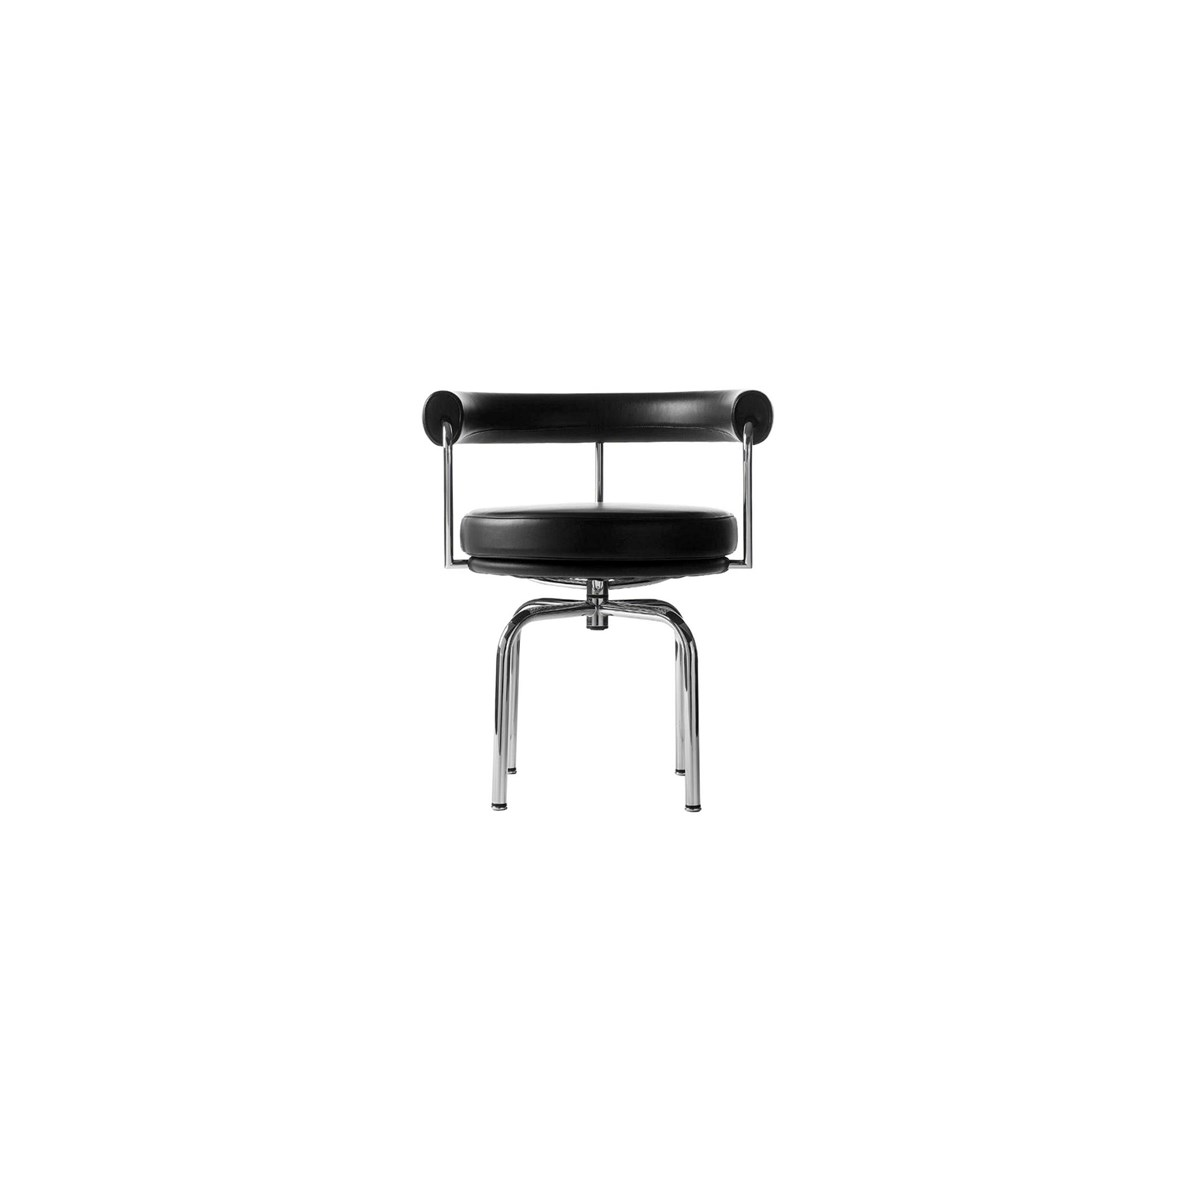 Cassina-Charlotte-Perriand-LC7-Armchair-Matisse-1